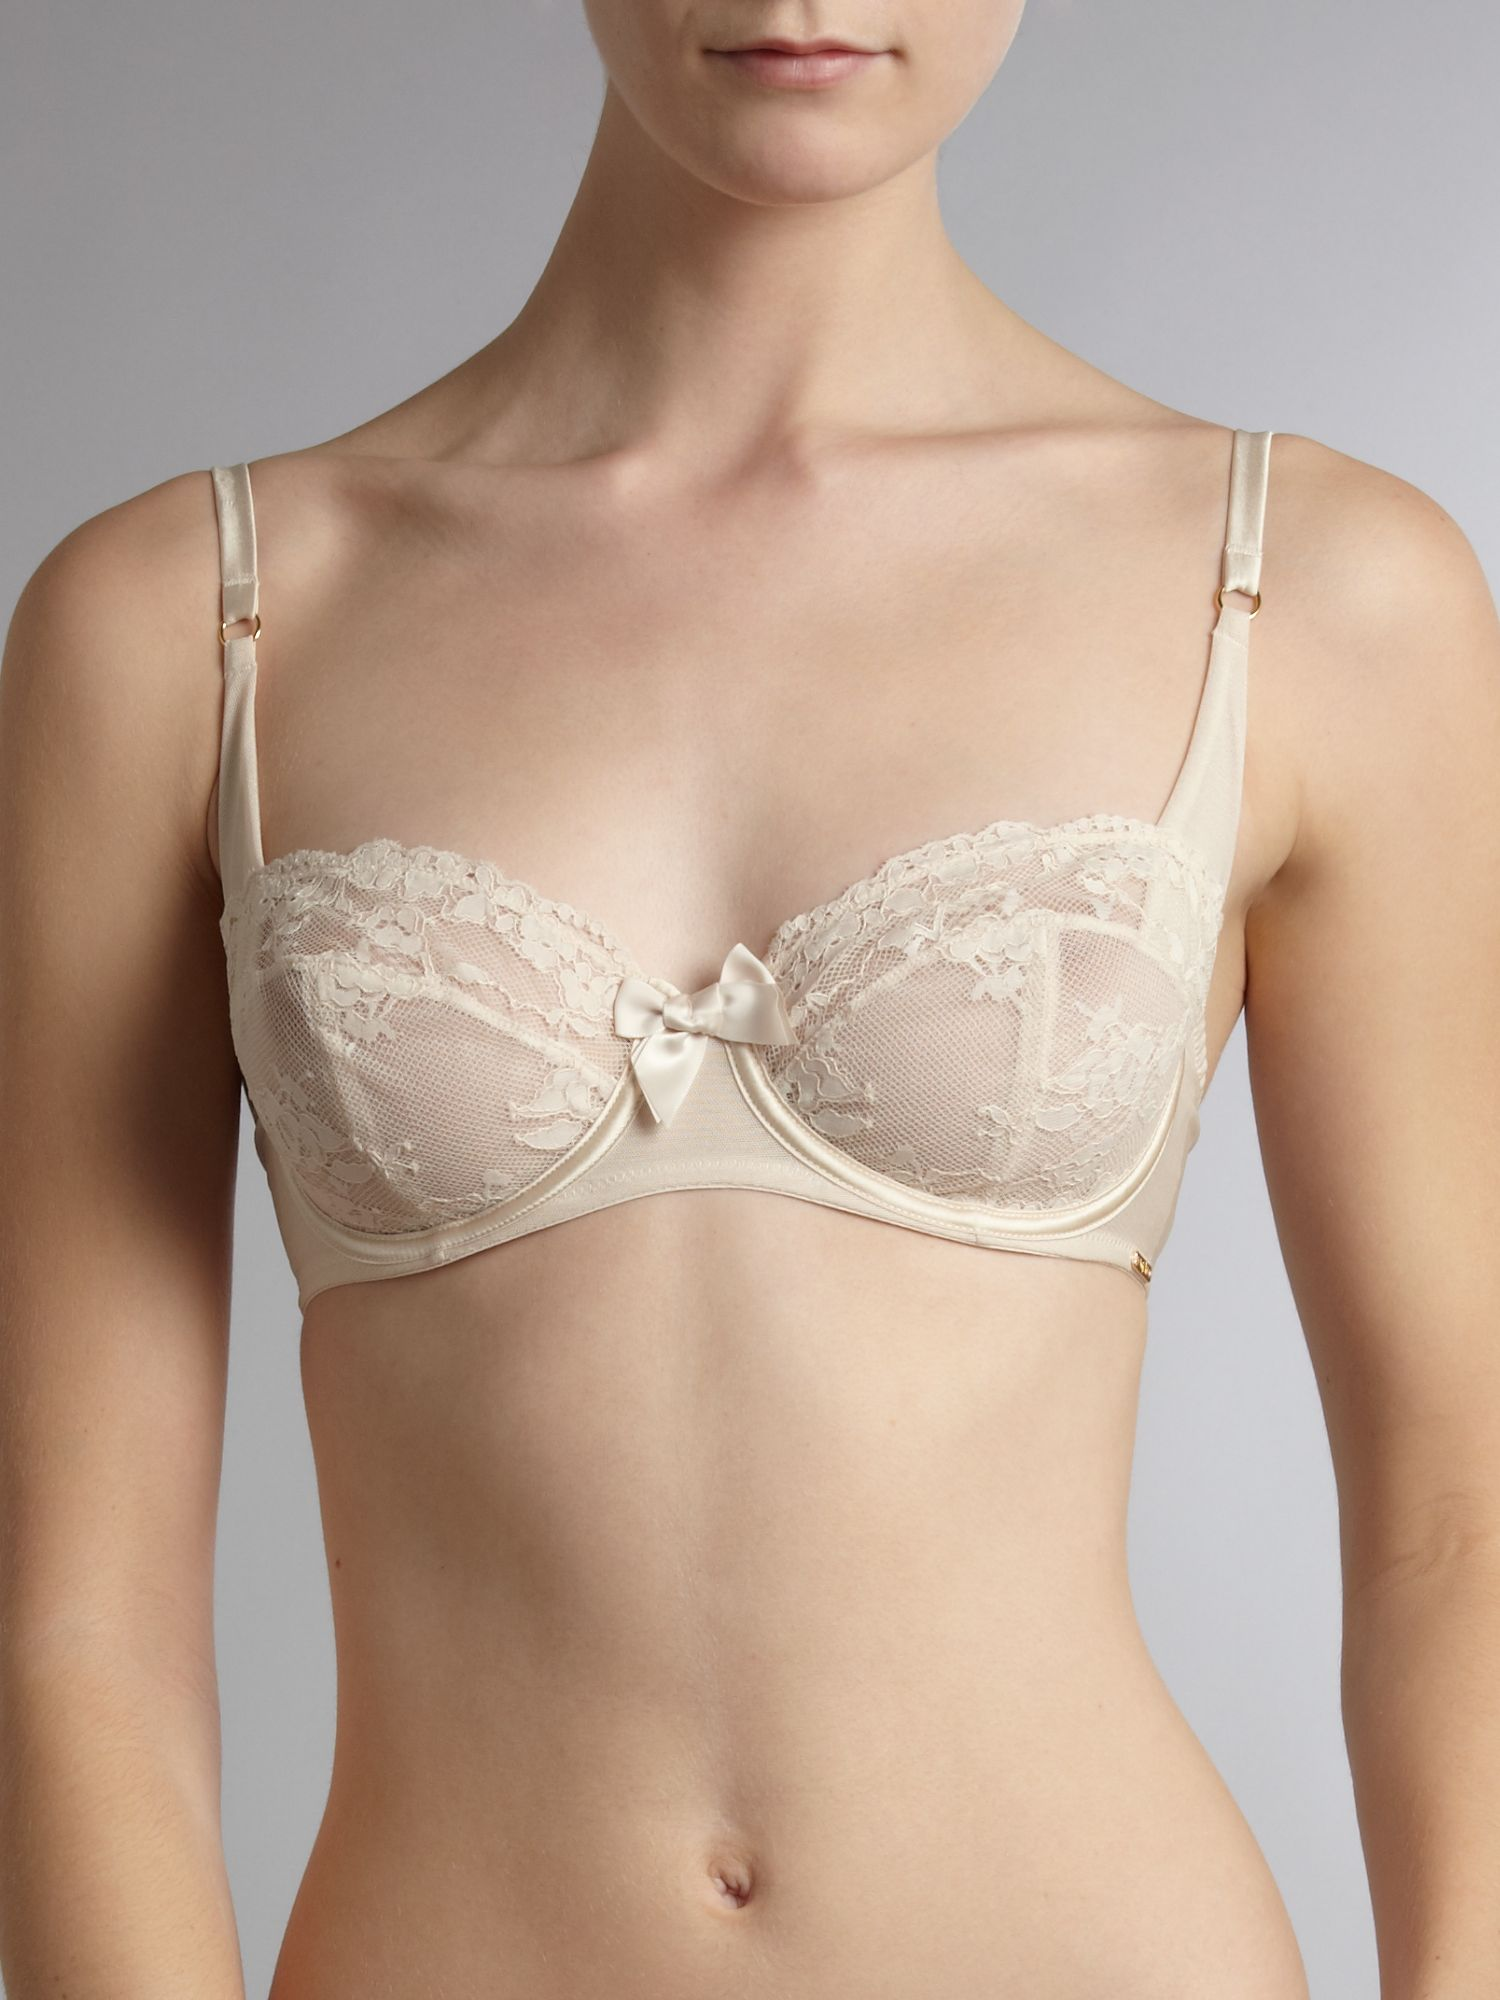 Lace underwired balcony bra